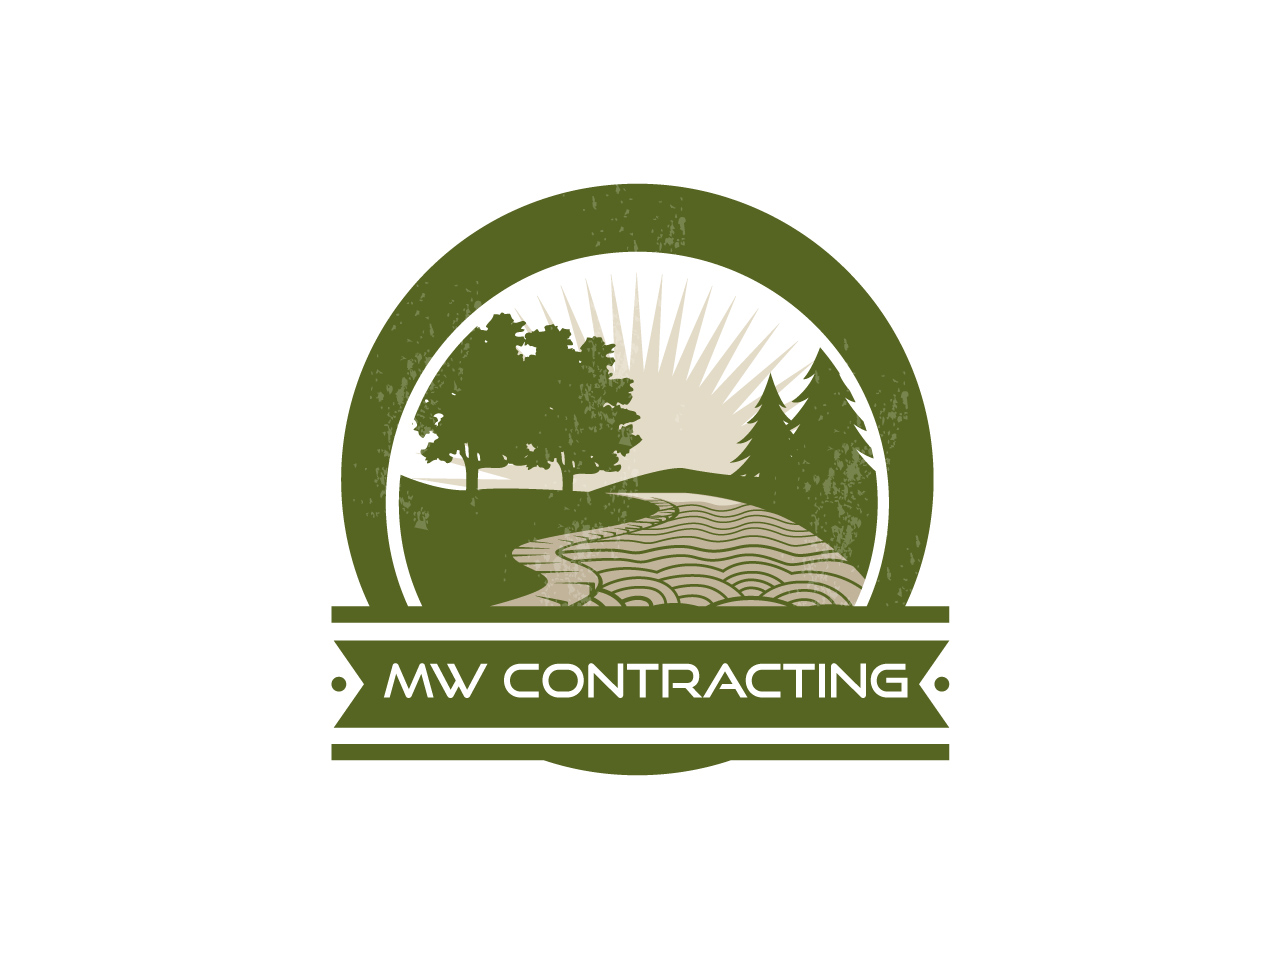 Logo Design by jpbituin - Entry No. 120 in the Logo Design Contest Unique Logo Design Wanted for MW Contracting.